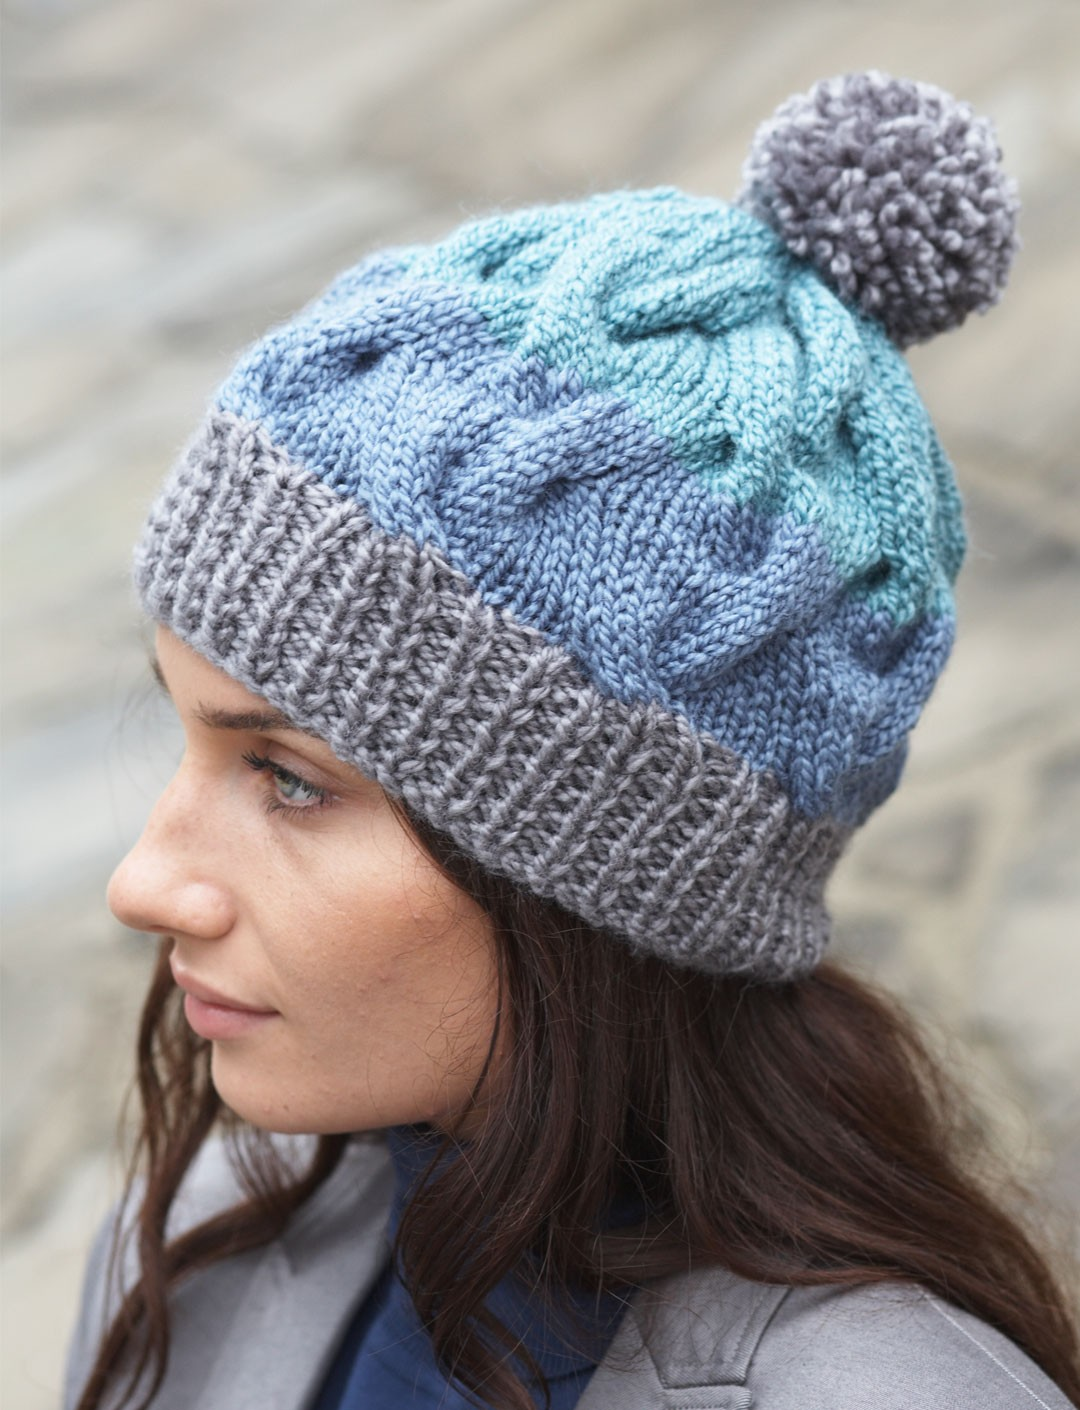 Patons Striped Cable Hat, Knit Pattern | Yarnspirations